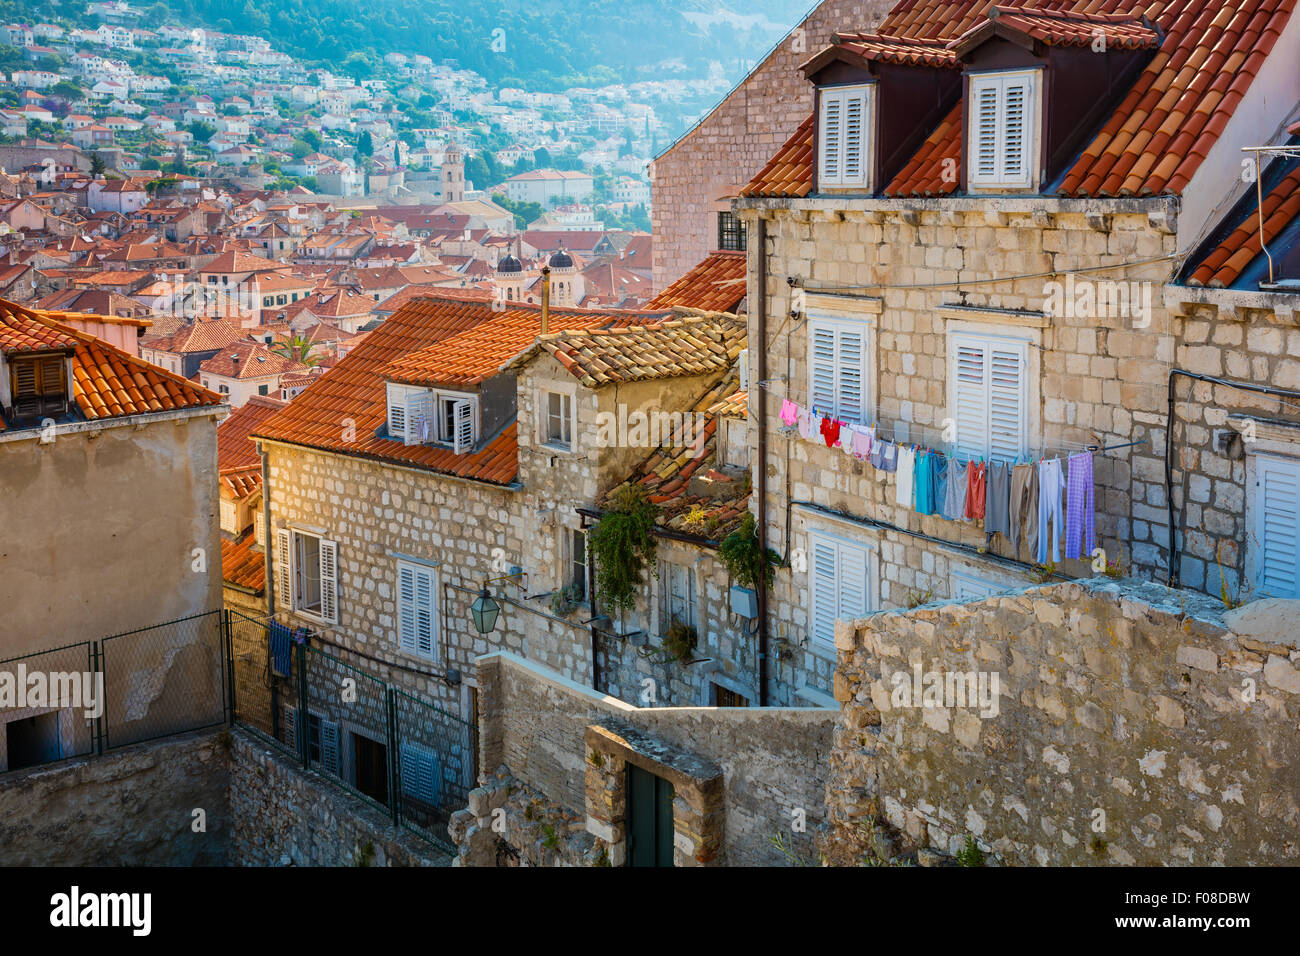 Dubrovnik, Croatia, with its characteristic medieval city walls. Dubrovnik is a Croatian city on the Adriatic Sea. Stock Photo